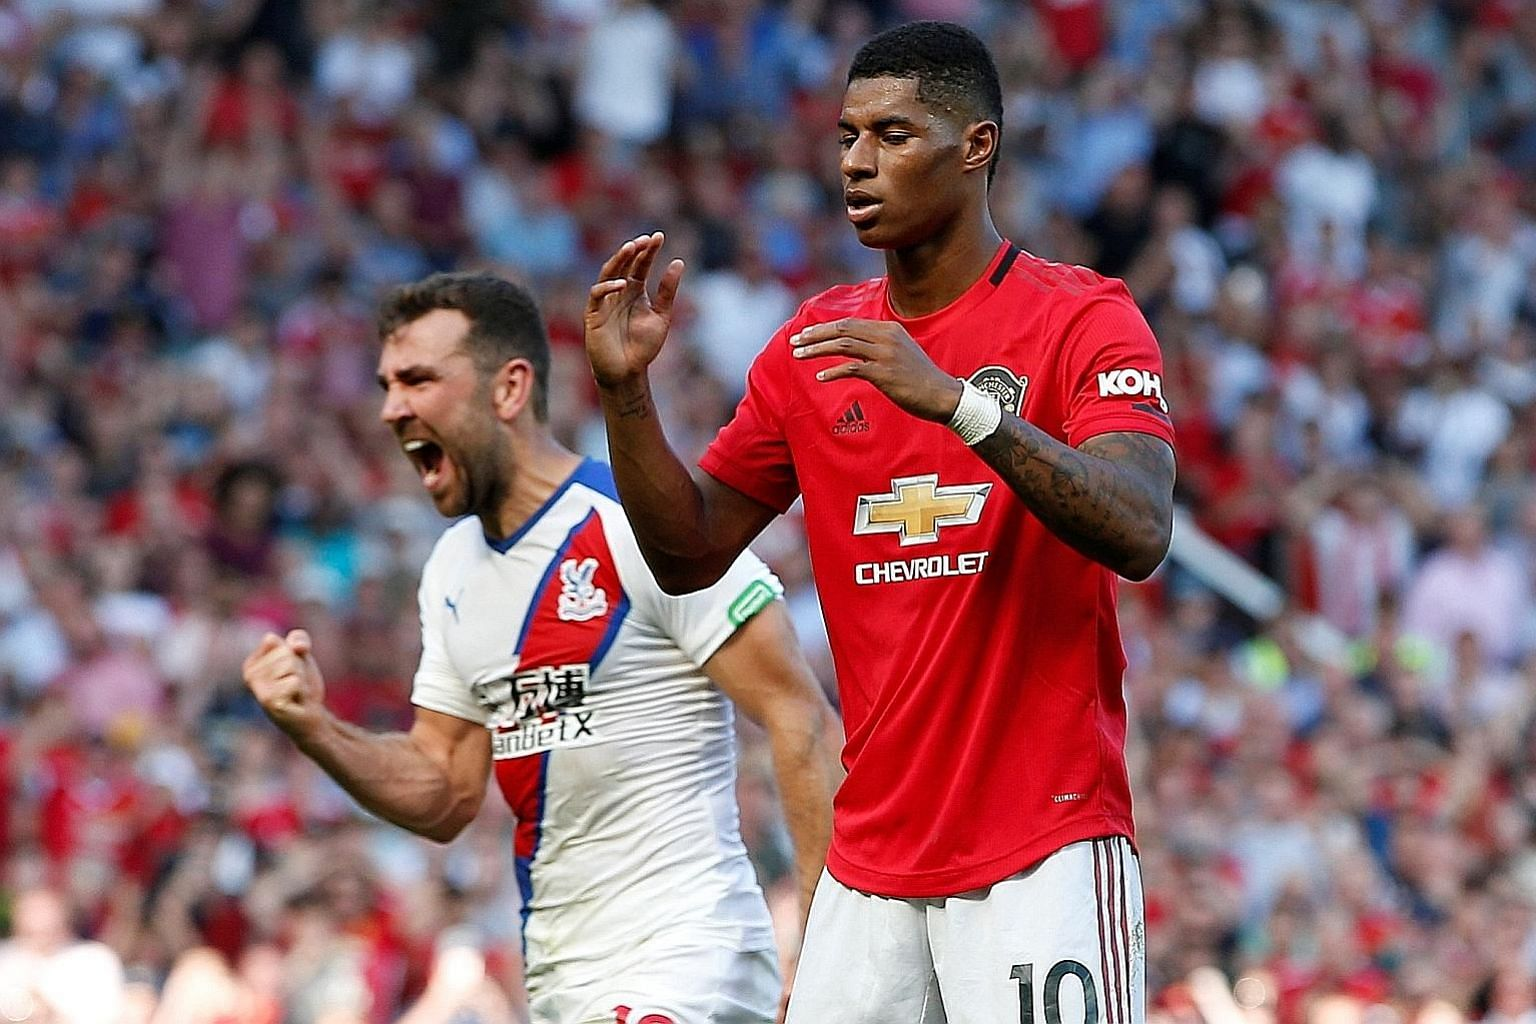 Marcus Rashford is the second Manchester United player after Paul Pogba to miss from the penalty spot in successive matches.